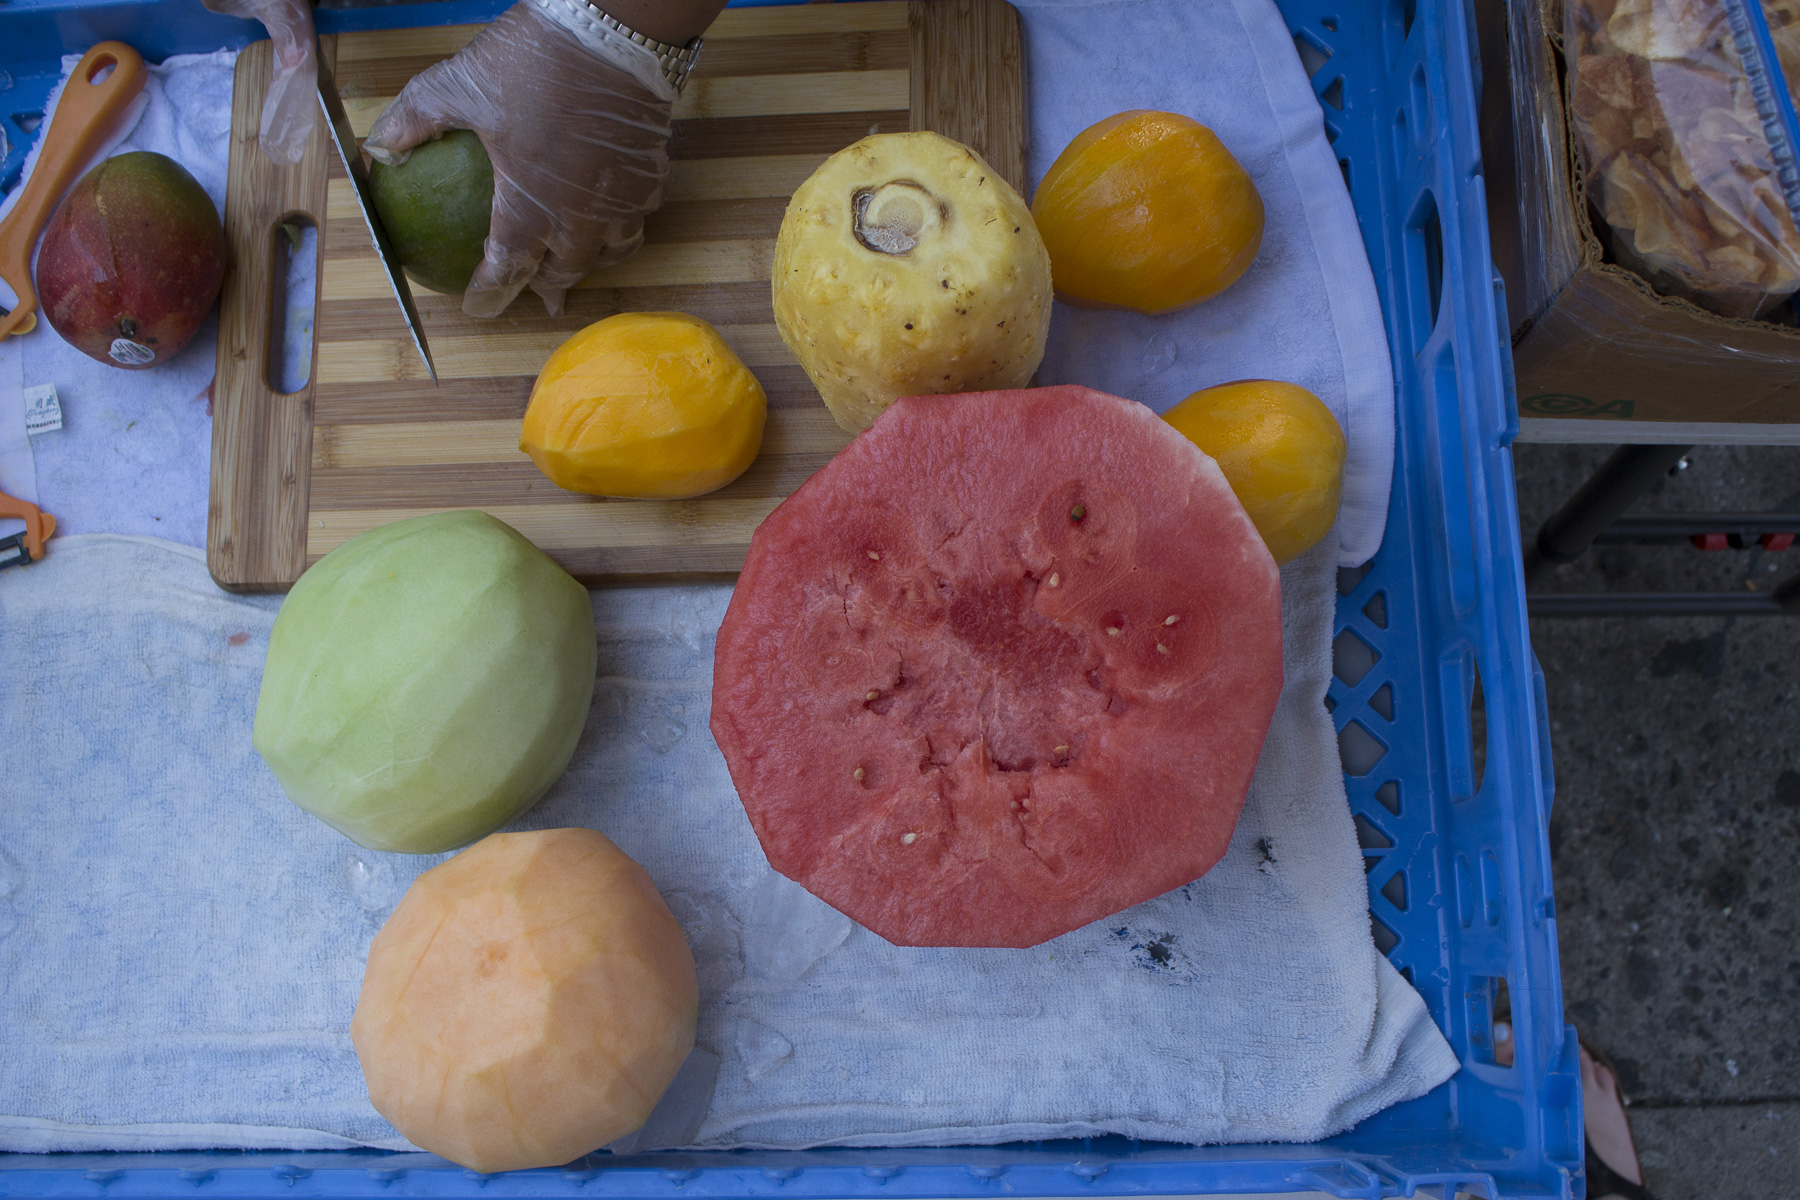 Teodosia is peeling mangoes, honeydew, cantaloupe, pineapple, and watermelon in preparation to cut and pack to sell. She buys her fruit from various places. August 22nd, 2017 Sunset Park, Brooklyn.